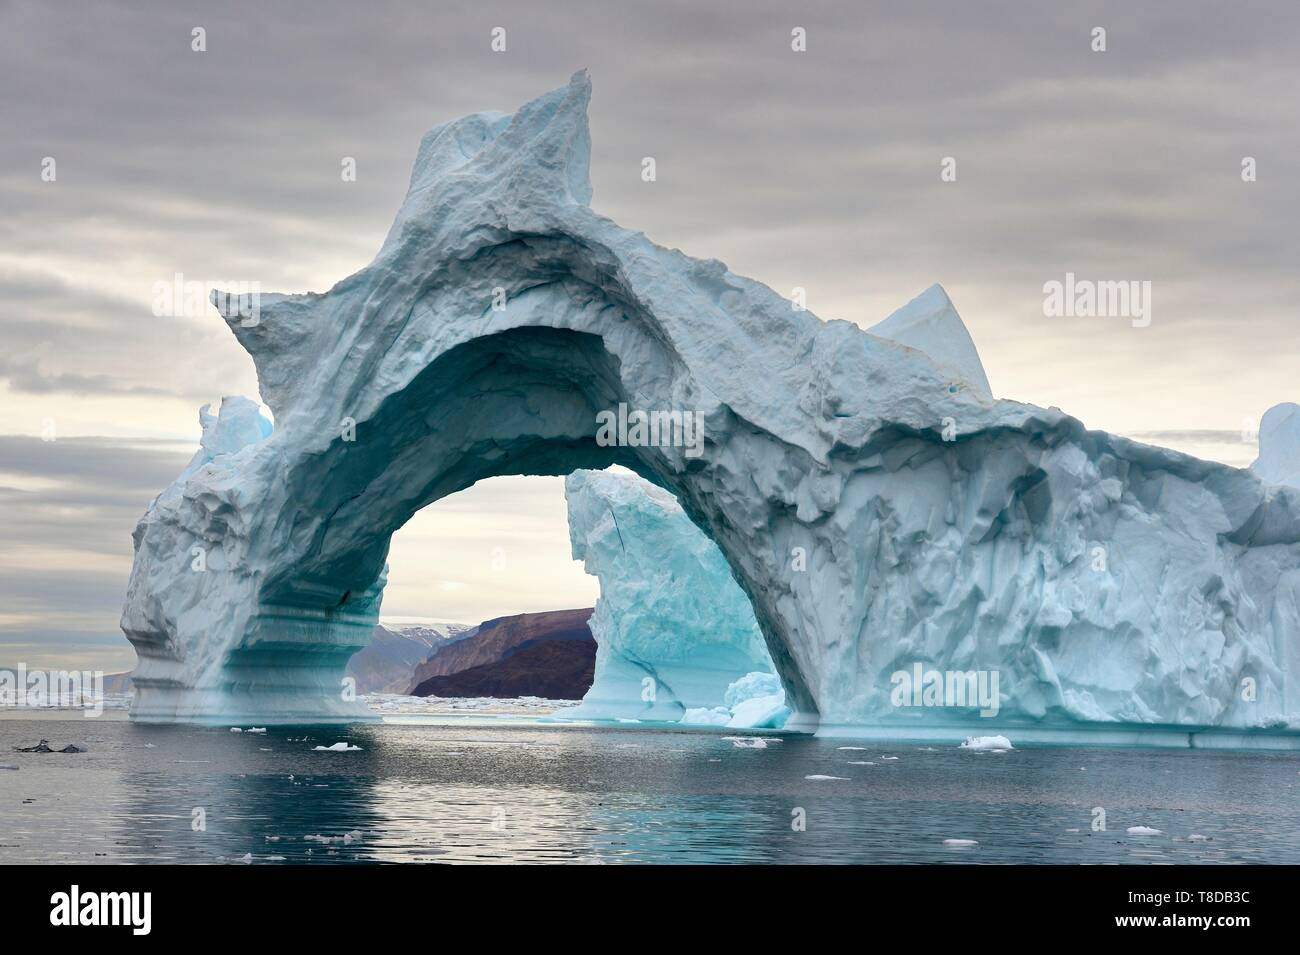 Le Groenland, côte nord-ouest, vers le fjord d'Inglefield Qaanaaq, iceberg, formant une arche Banque D'Images